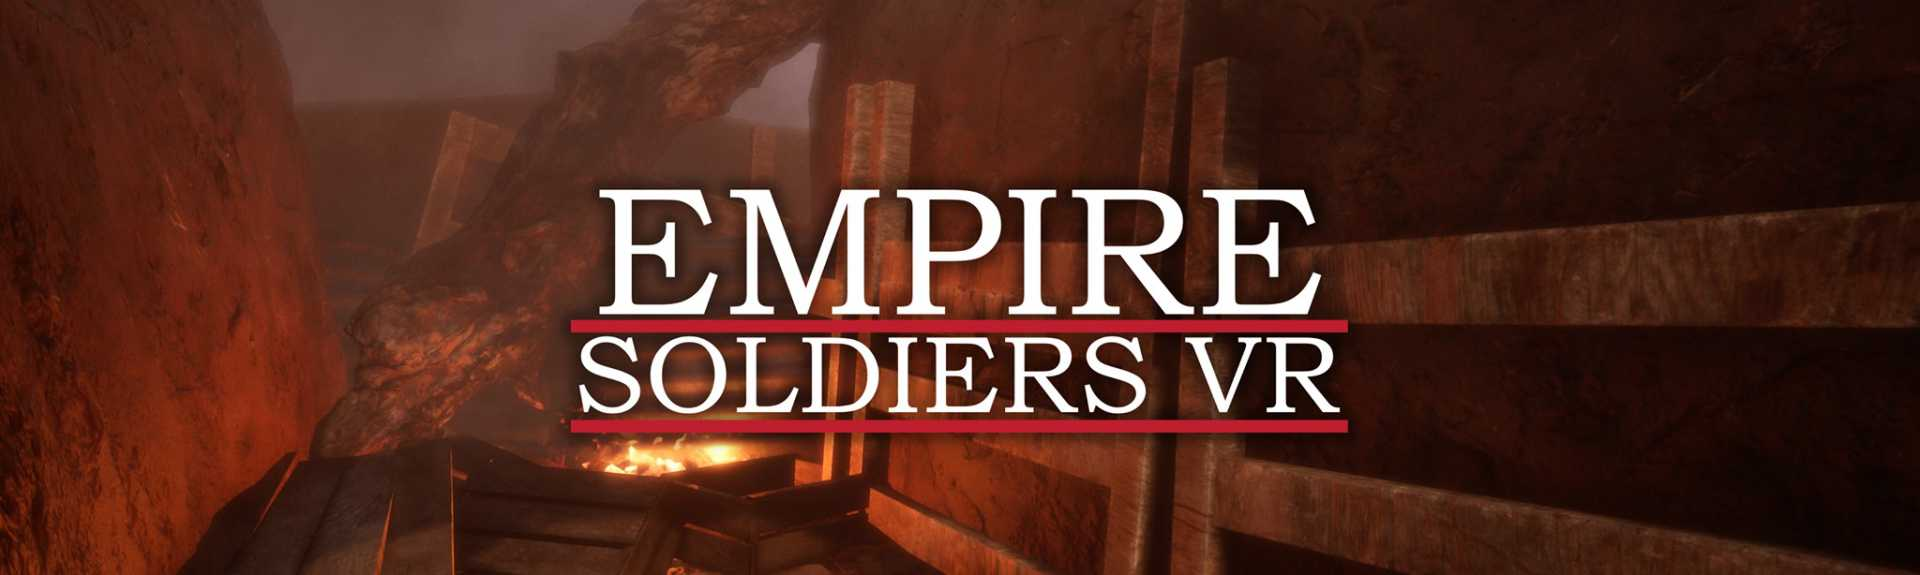 Empire Soldiers VR